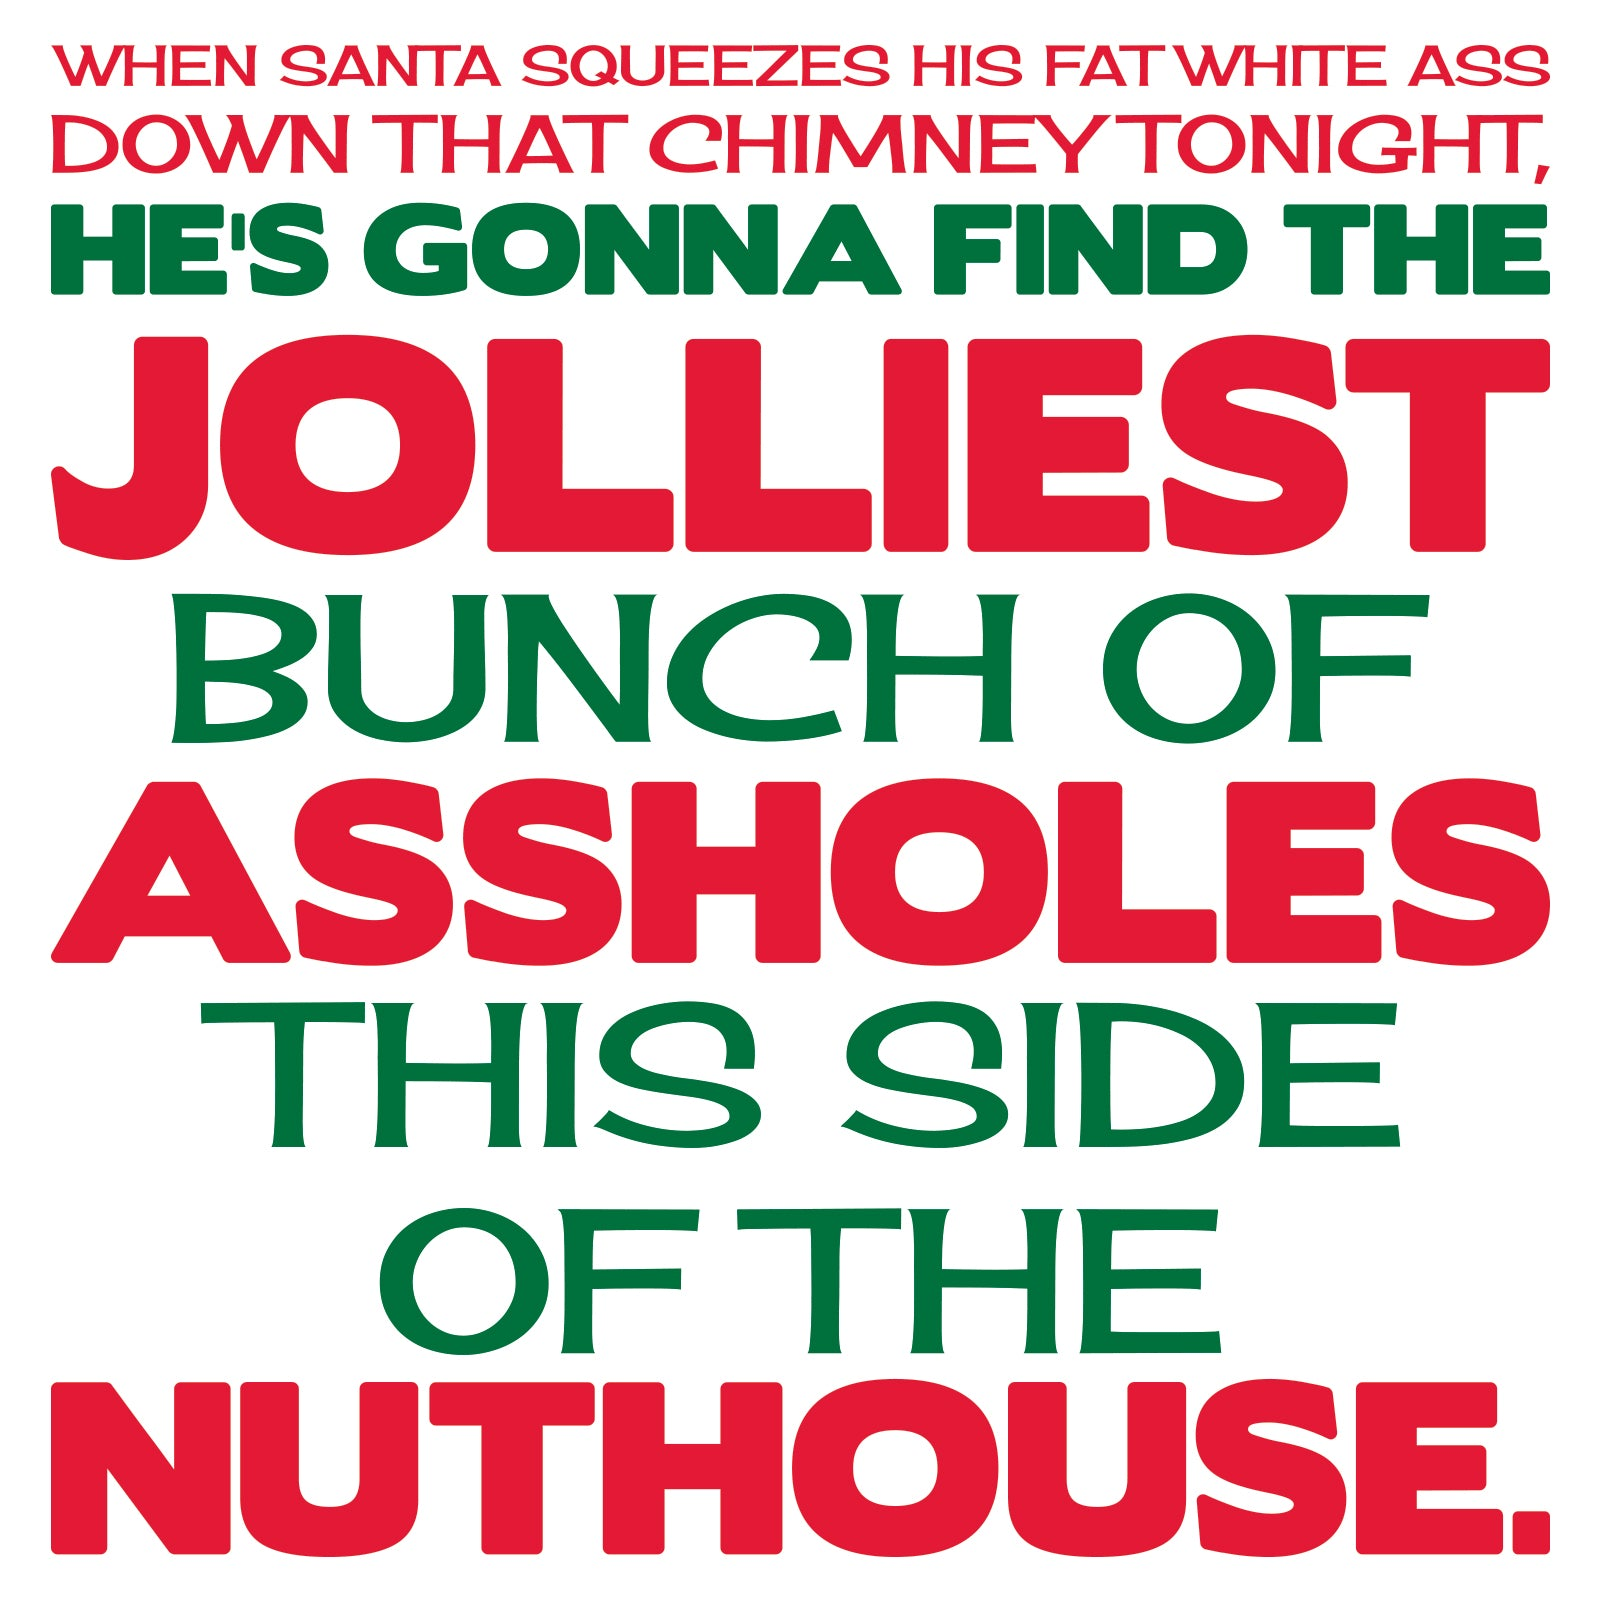 National Lampoons Christmas Vacation Jolliest Bunch Of A$$holes Adult T Shirt